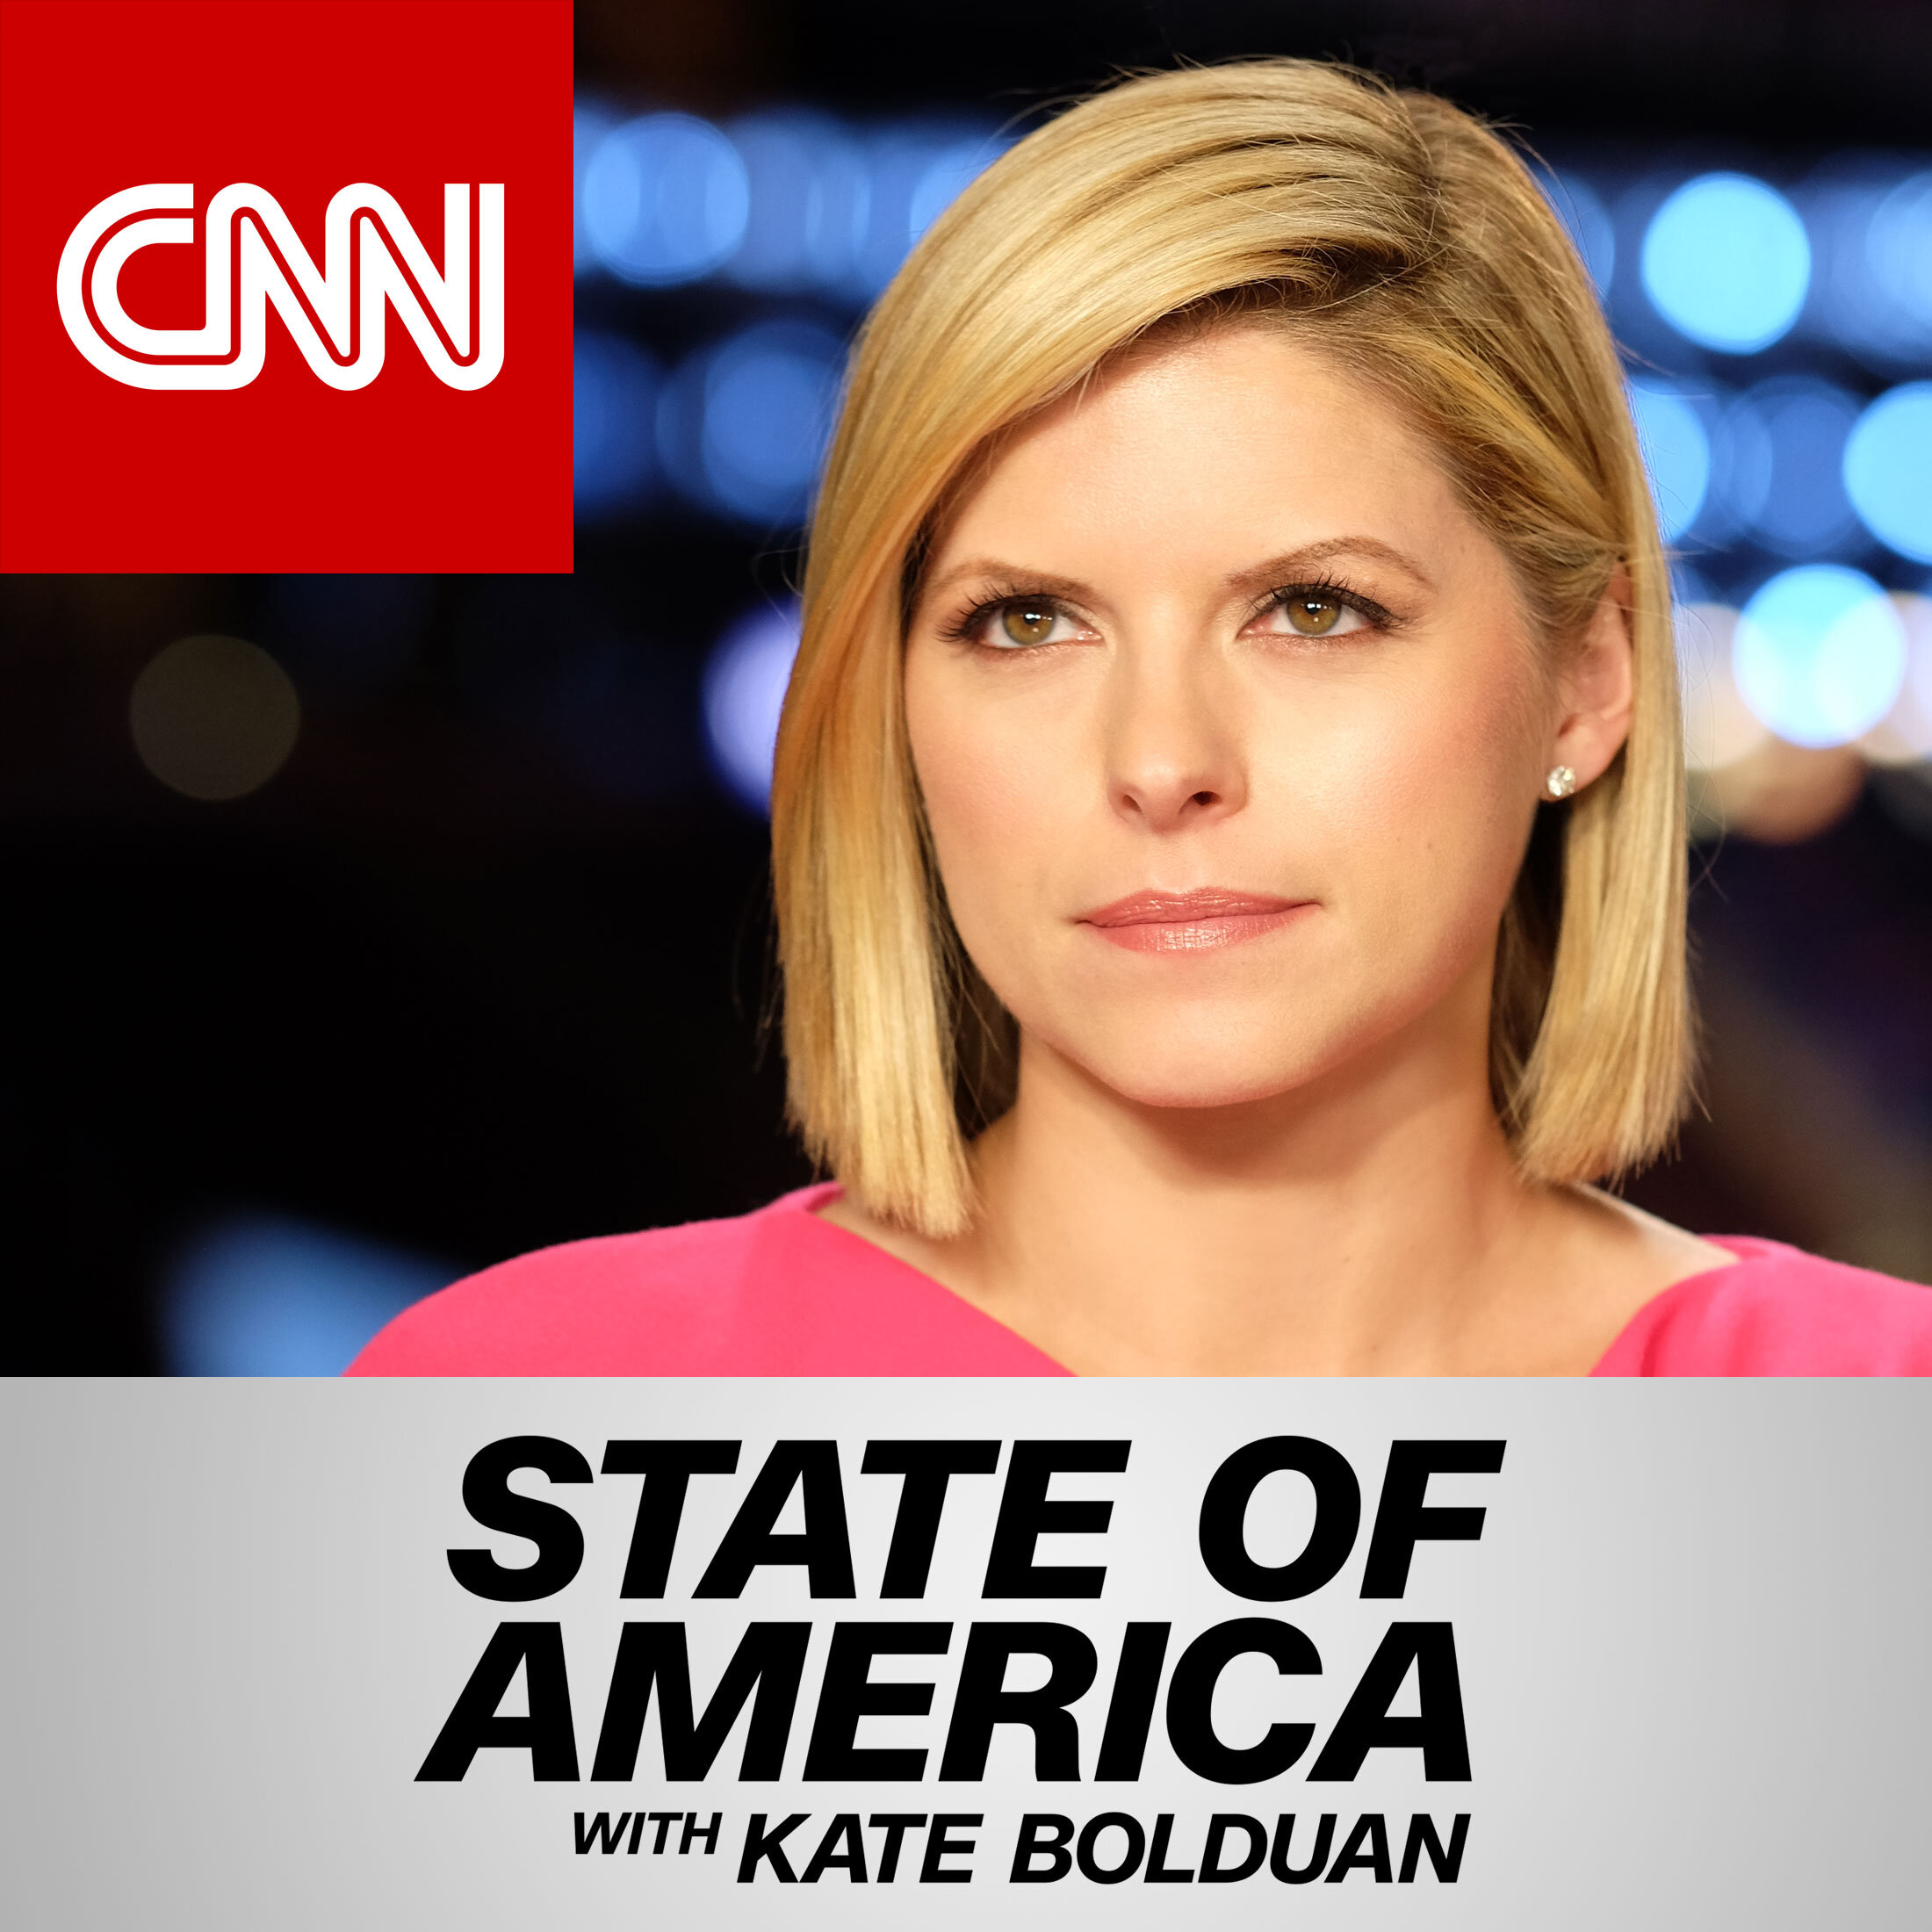 State of America